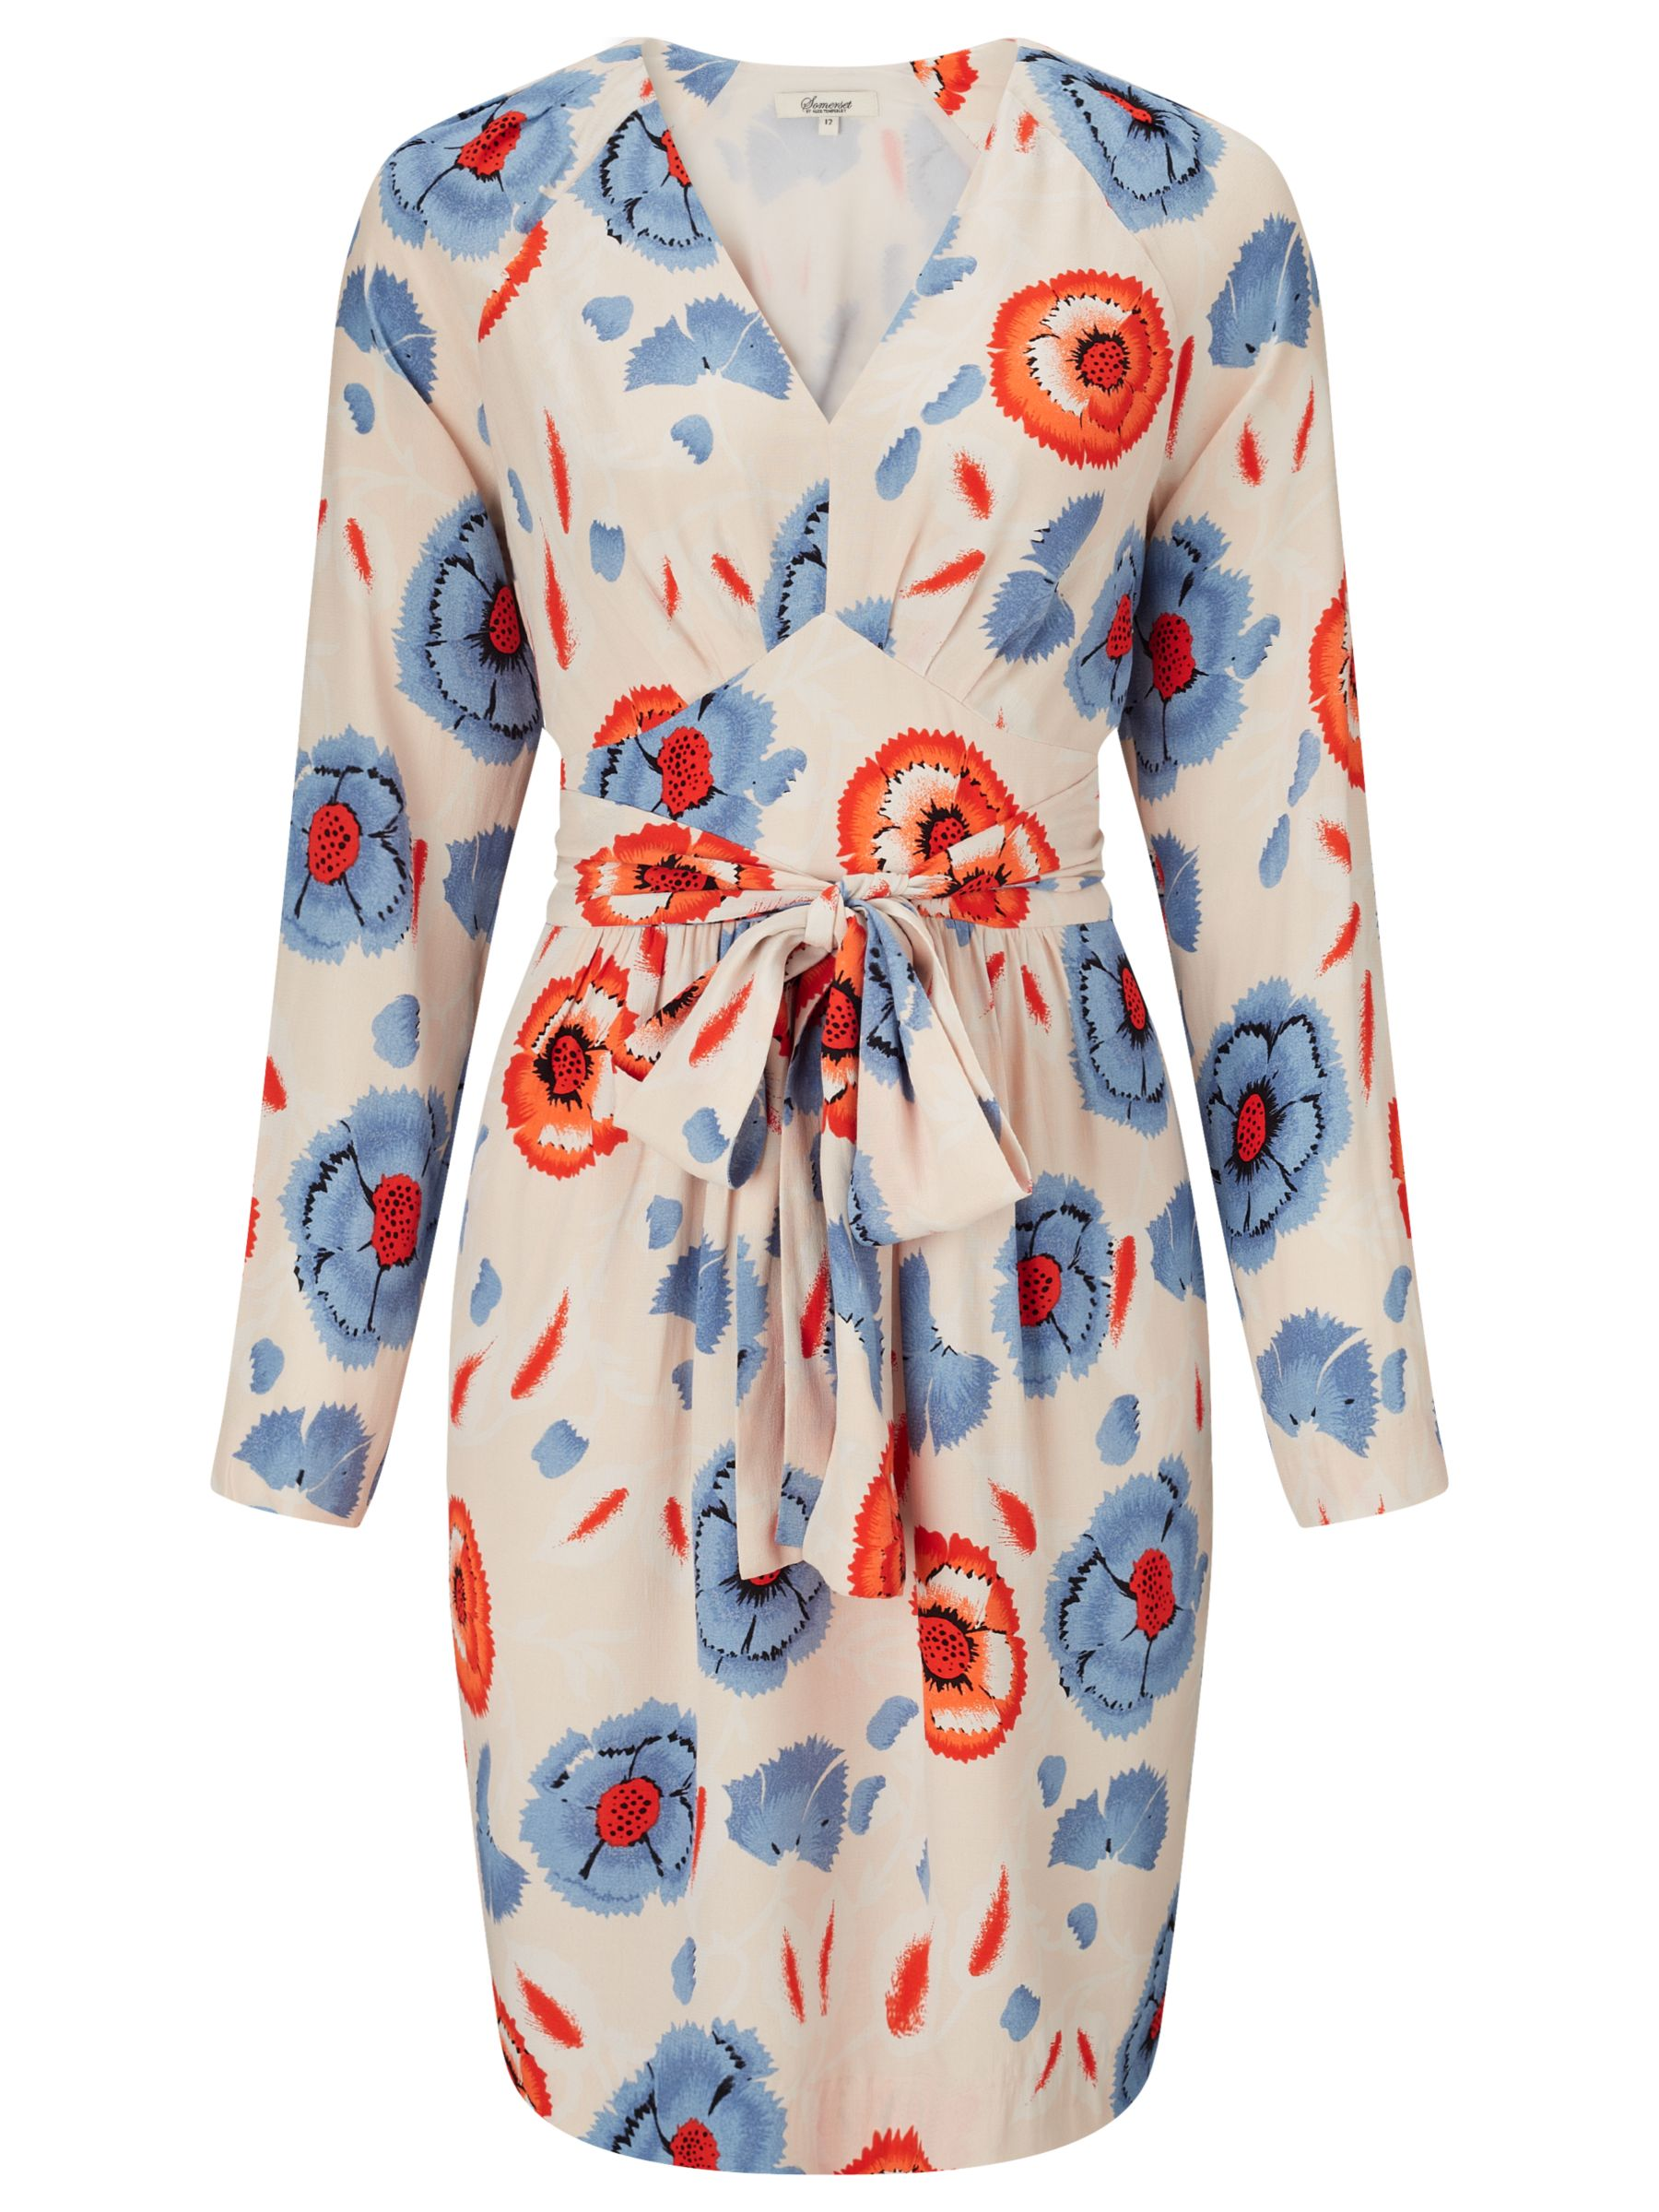 somerset by alice temperley floral print dress multi, somerset, alice, temperley, floral, print, dress, multi, somerset by alice temperley, 6|18|16|8|14|10|12, fashion magazine, the edit a seventies spring, women, womens dresses, gifts, wedding, wedding clothing, female guests, inactive womenswear, outfit ideas, brands l-z, 1785316